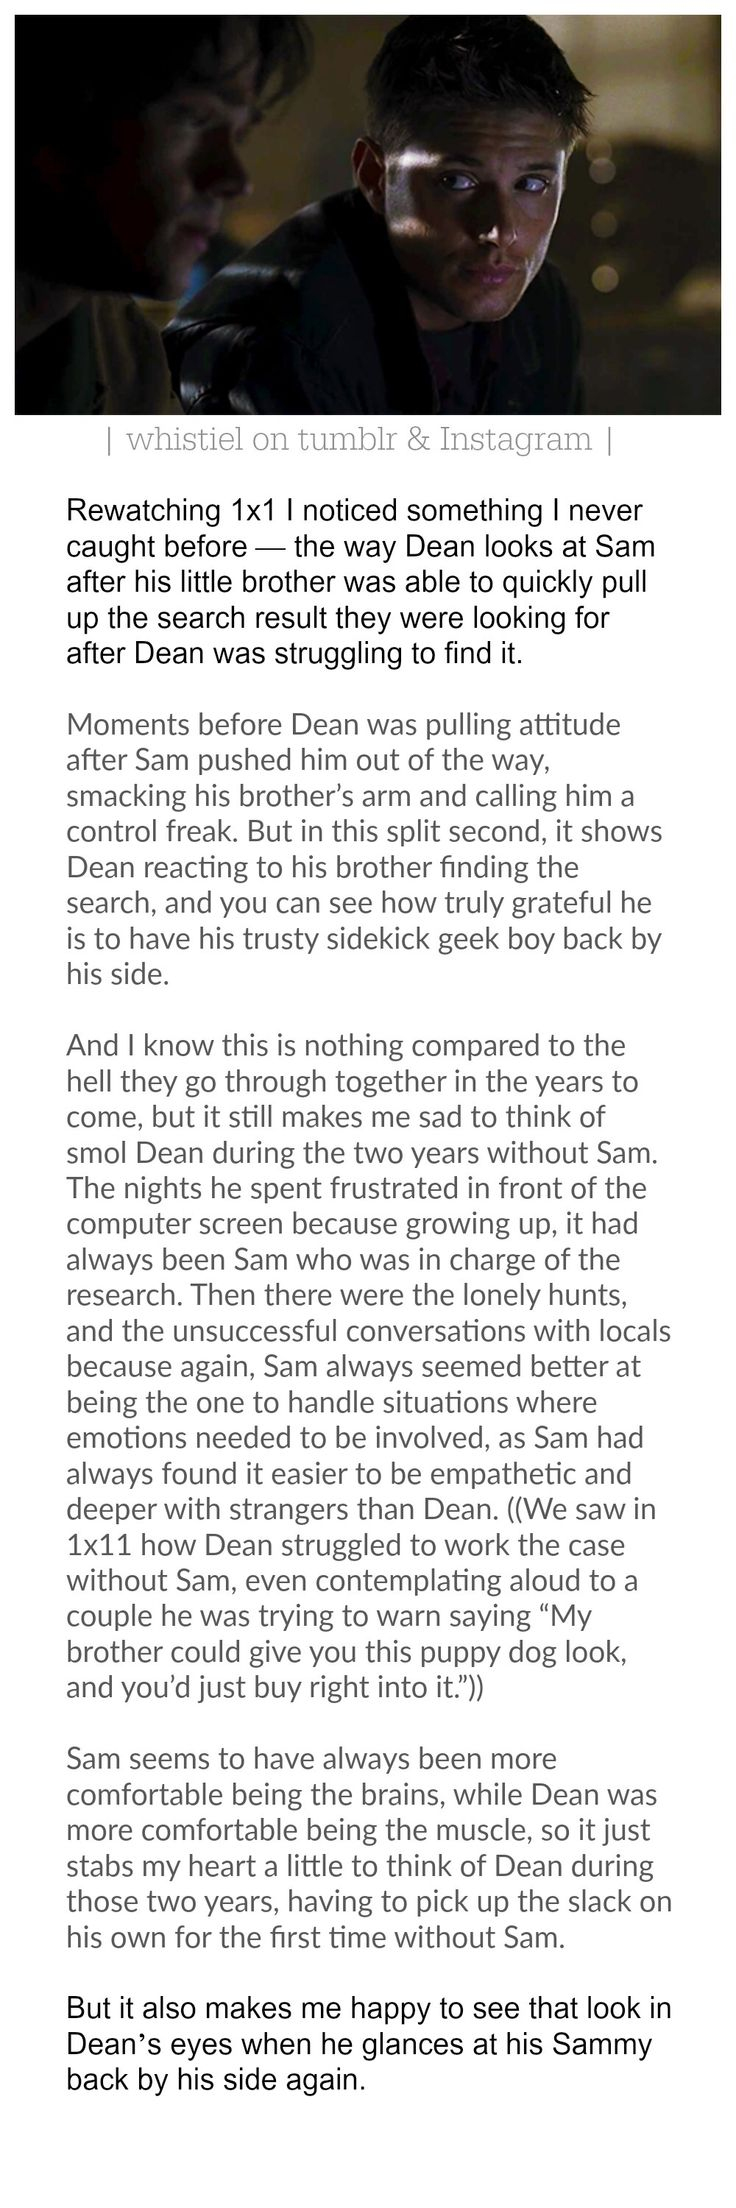 supernatural analysis from the pilot 1x1 about Dean Winchester and Sam Winchester. I love this :') Season 1 was my favourite!